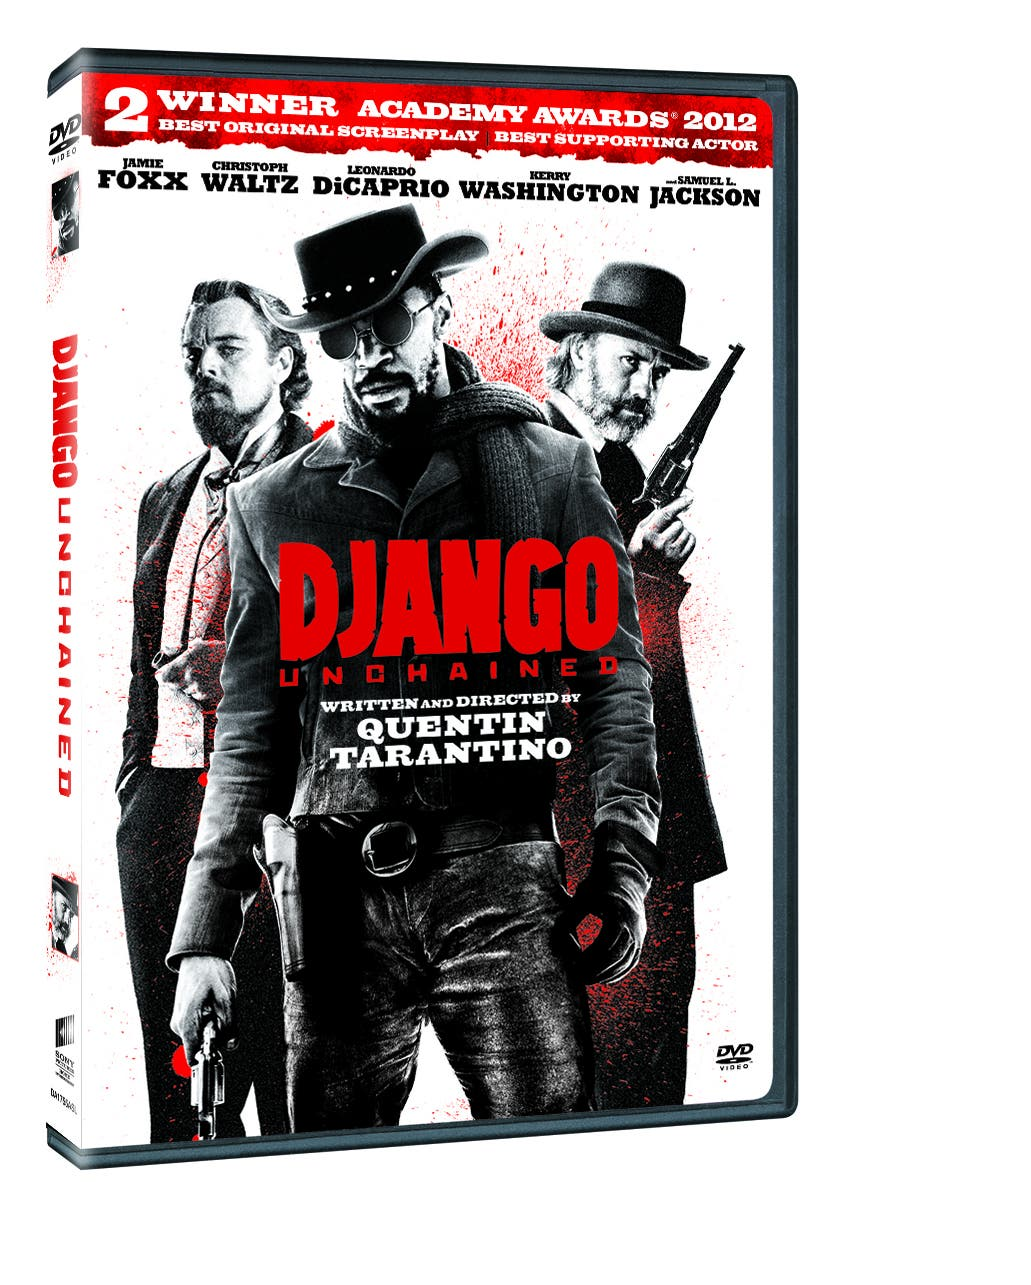 Django unchained 2017 dvd screener etrg.avi subtitles : sewoda